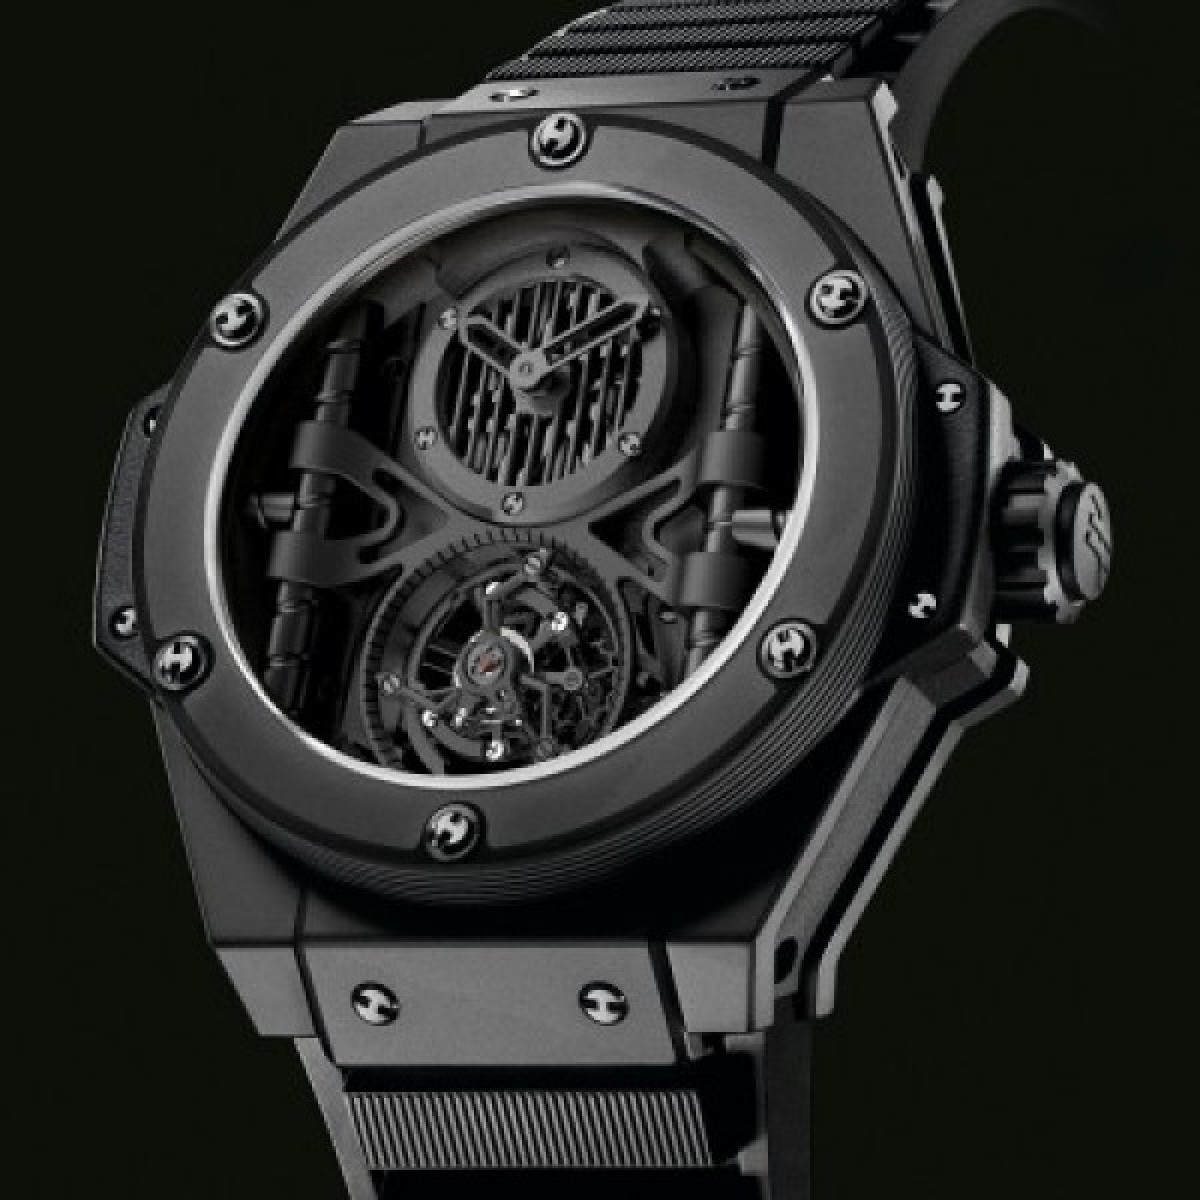 f4cc6522ac7 Espiar · Relógio Réplica Hublot King Power All Black Ediiton Limited